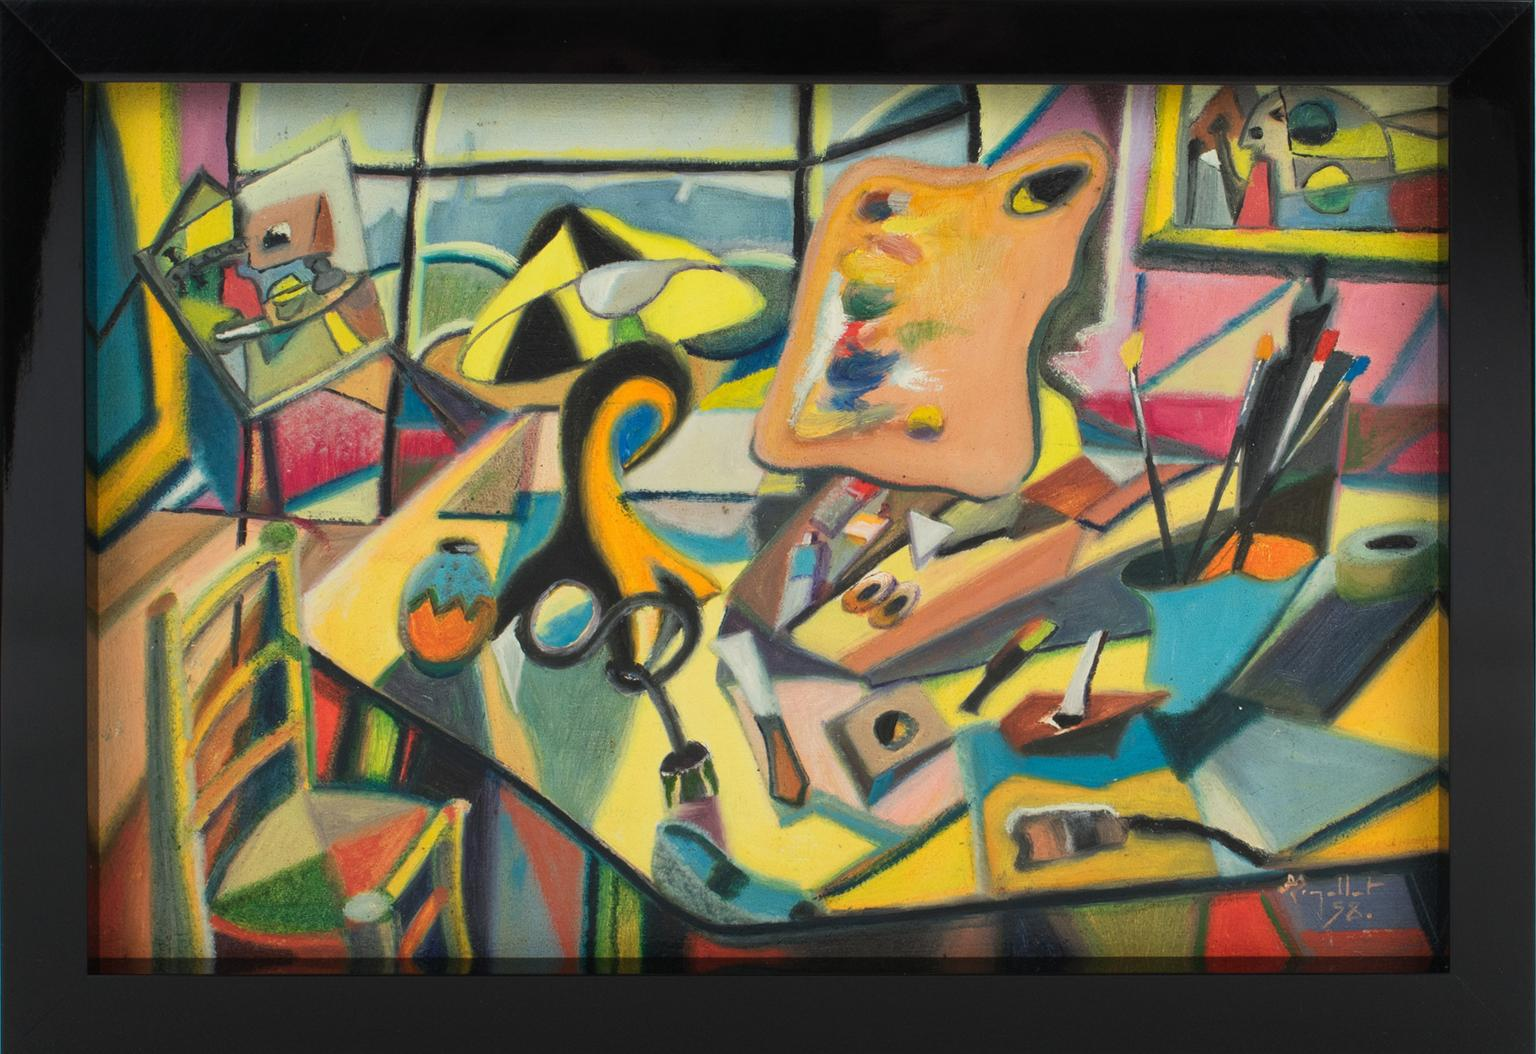 The Painter's Studio Colorful Post-Cubist Oil Painting by A. Rigollot